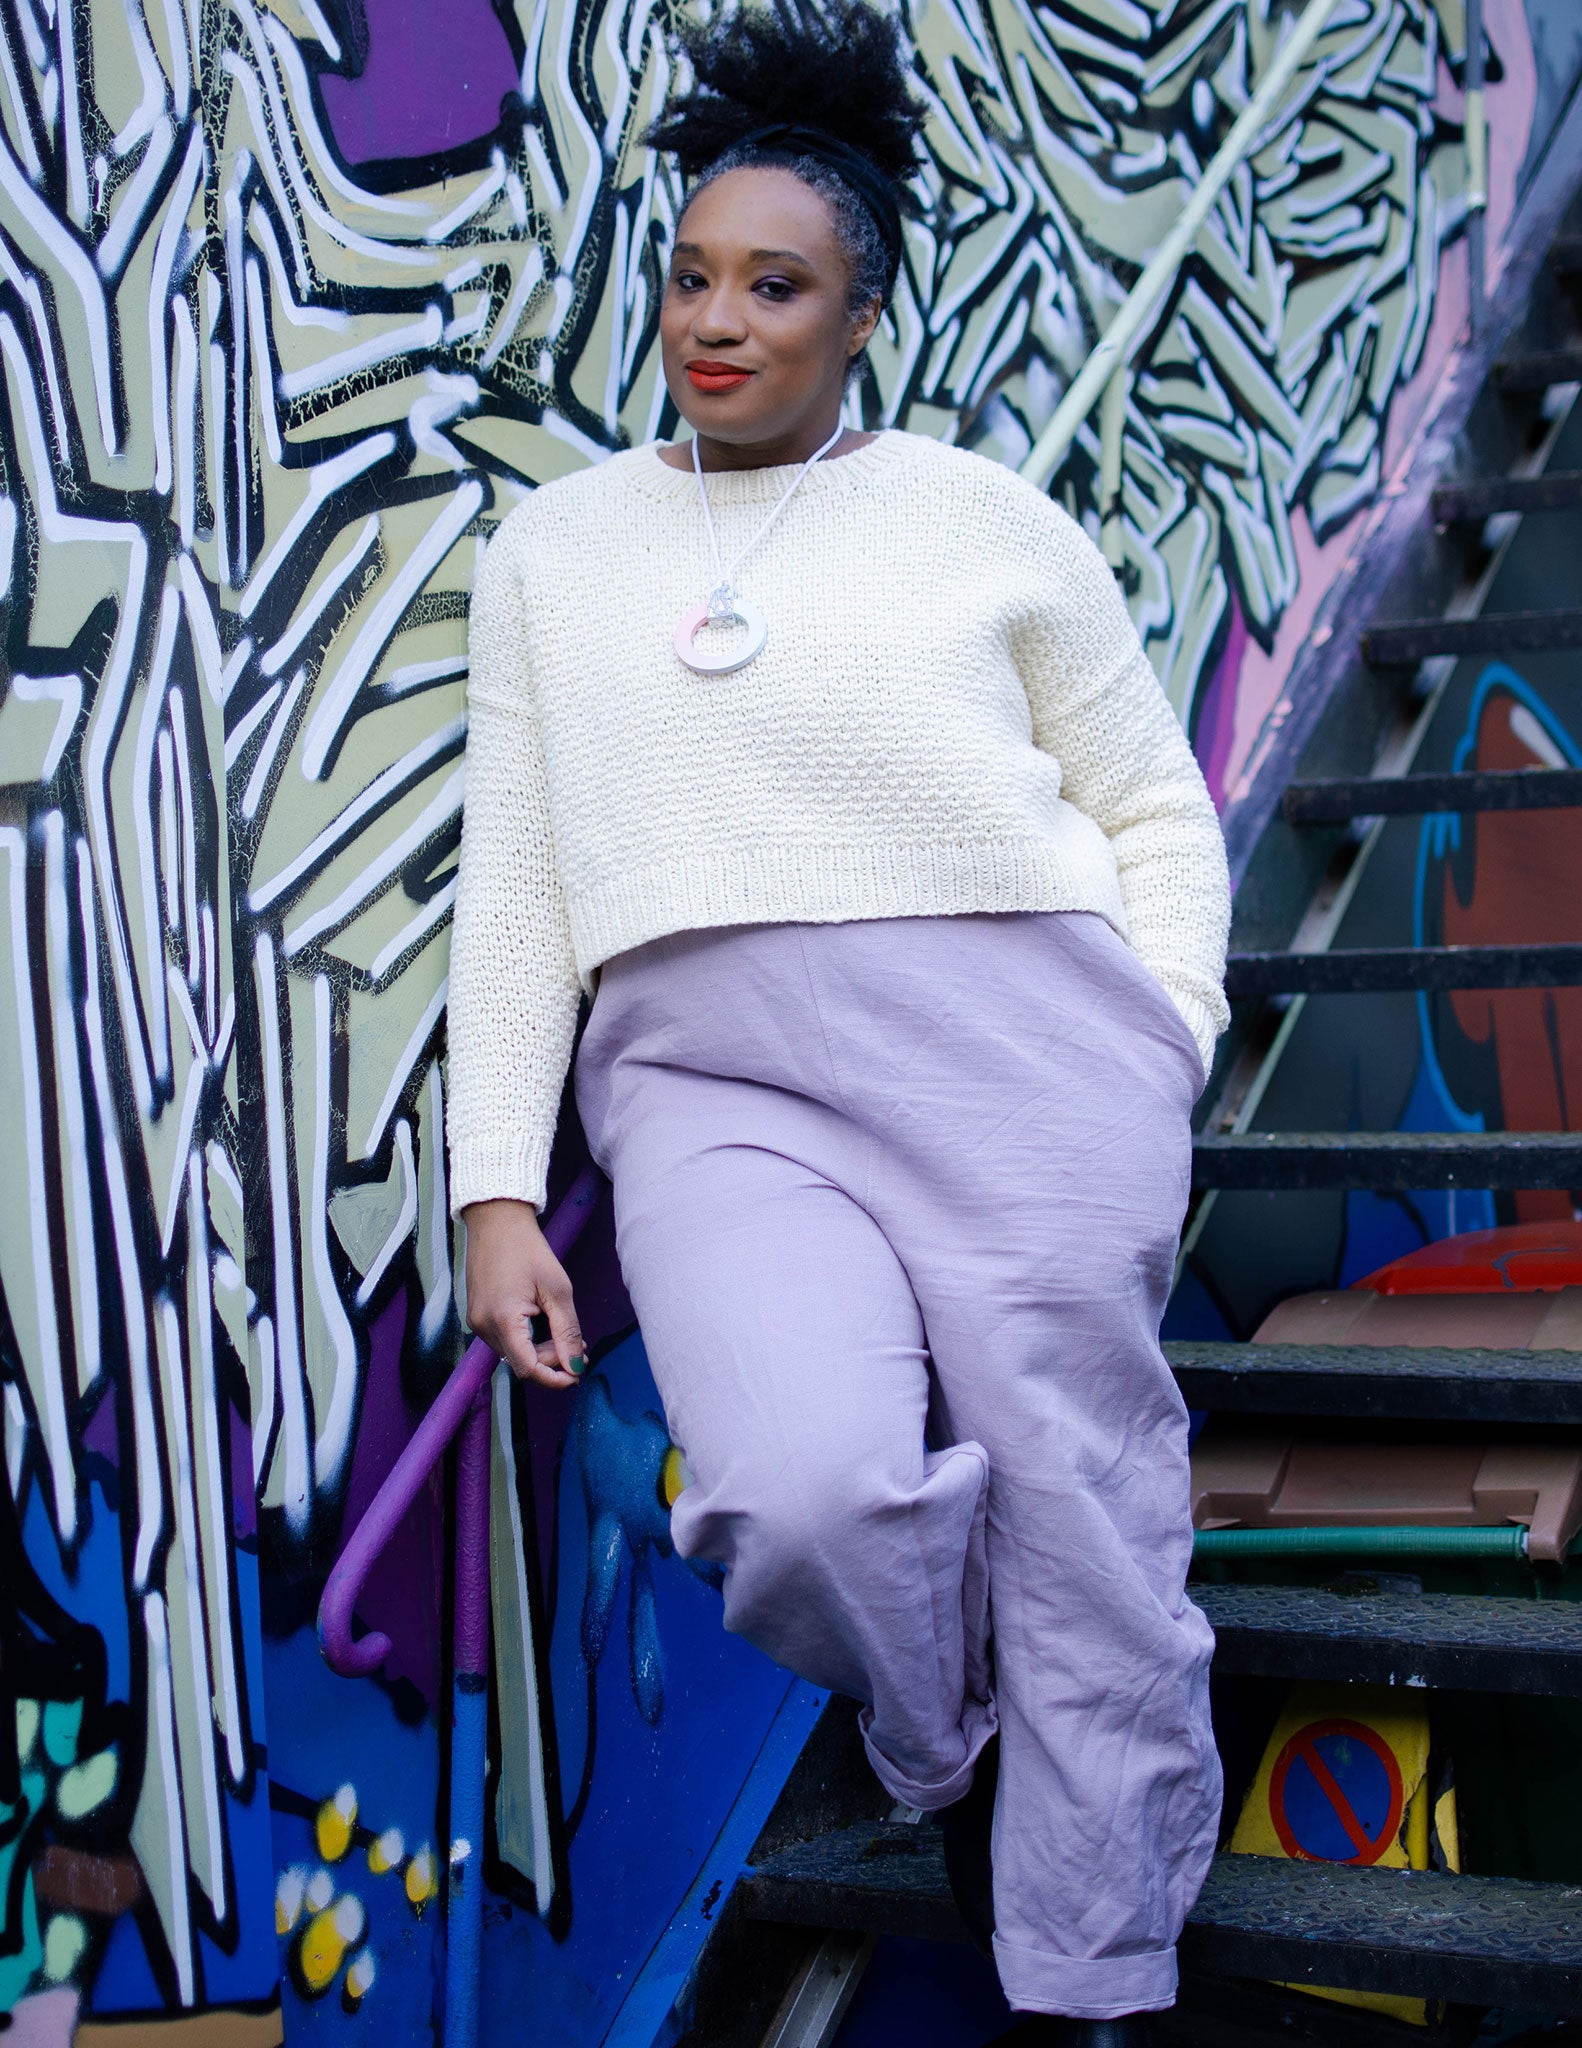 A black woman with her hair pulled up on top of her head leans against a graffitied wall. She's wearing a lavender jumpsuit with a white cropped sweater.